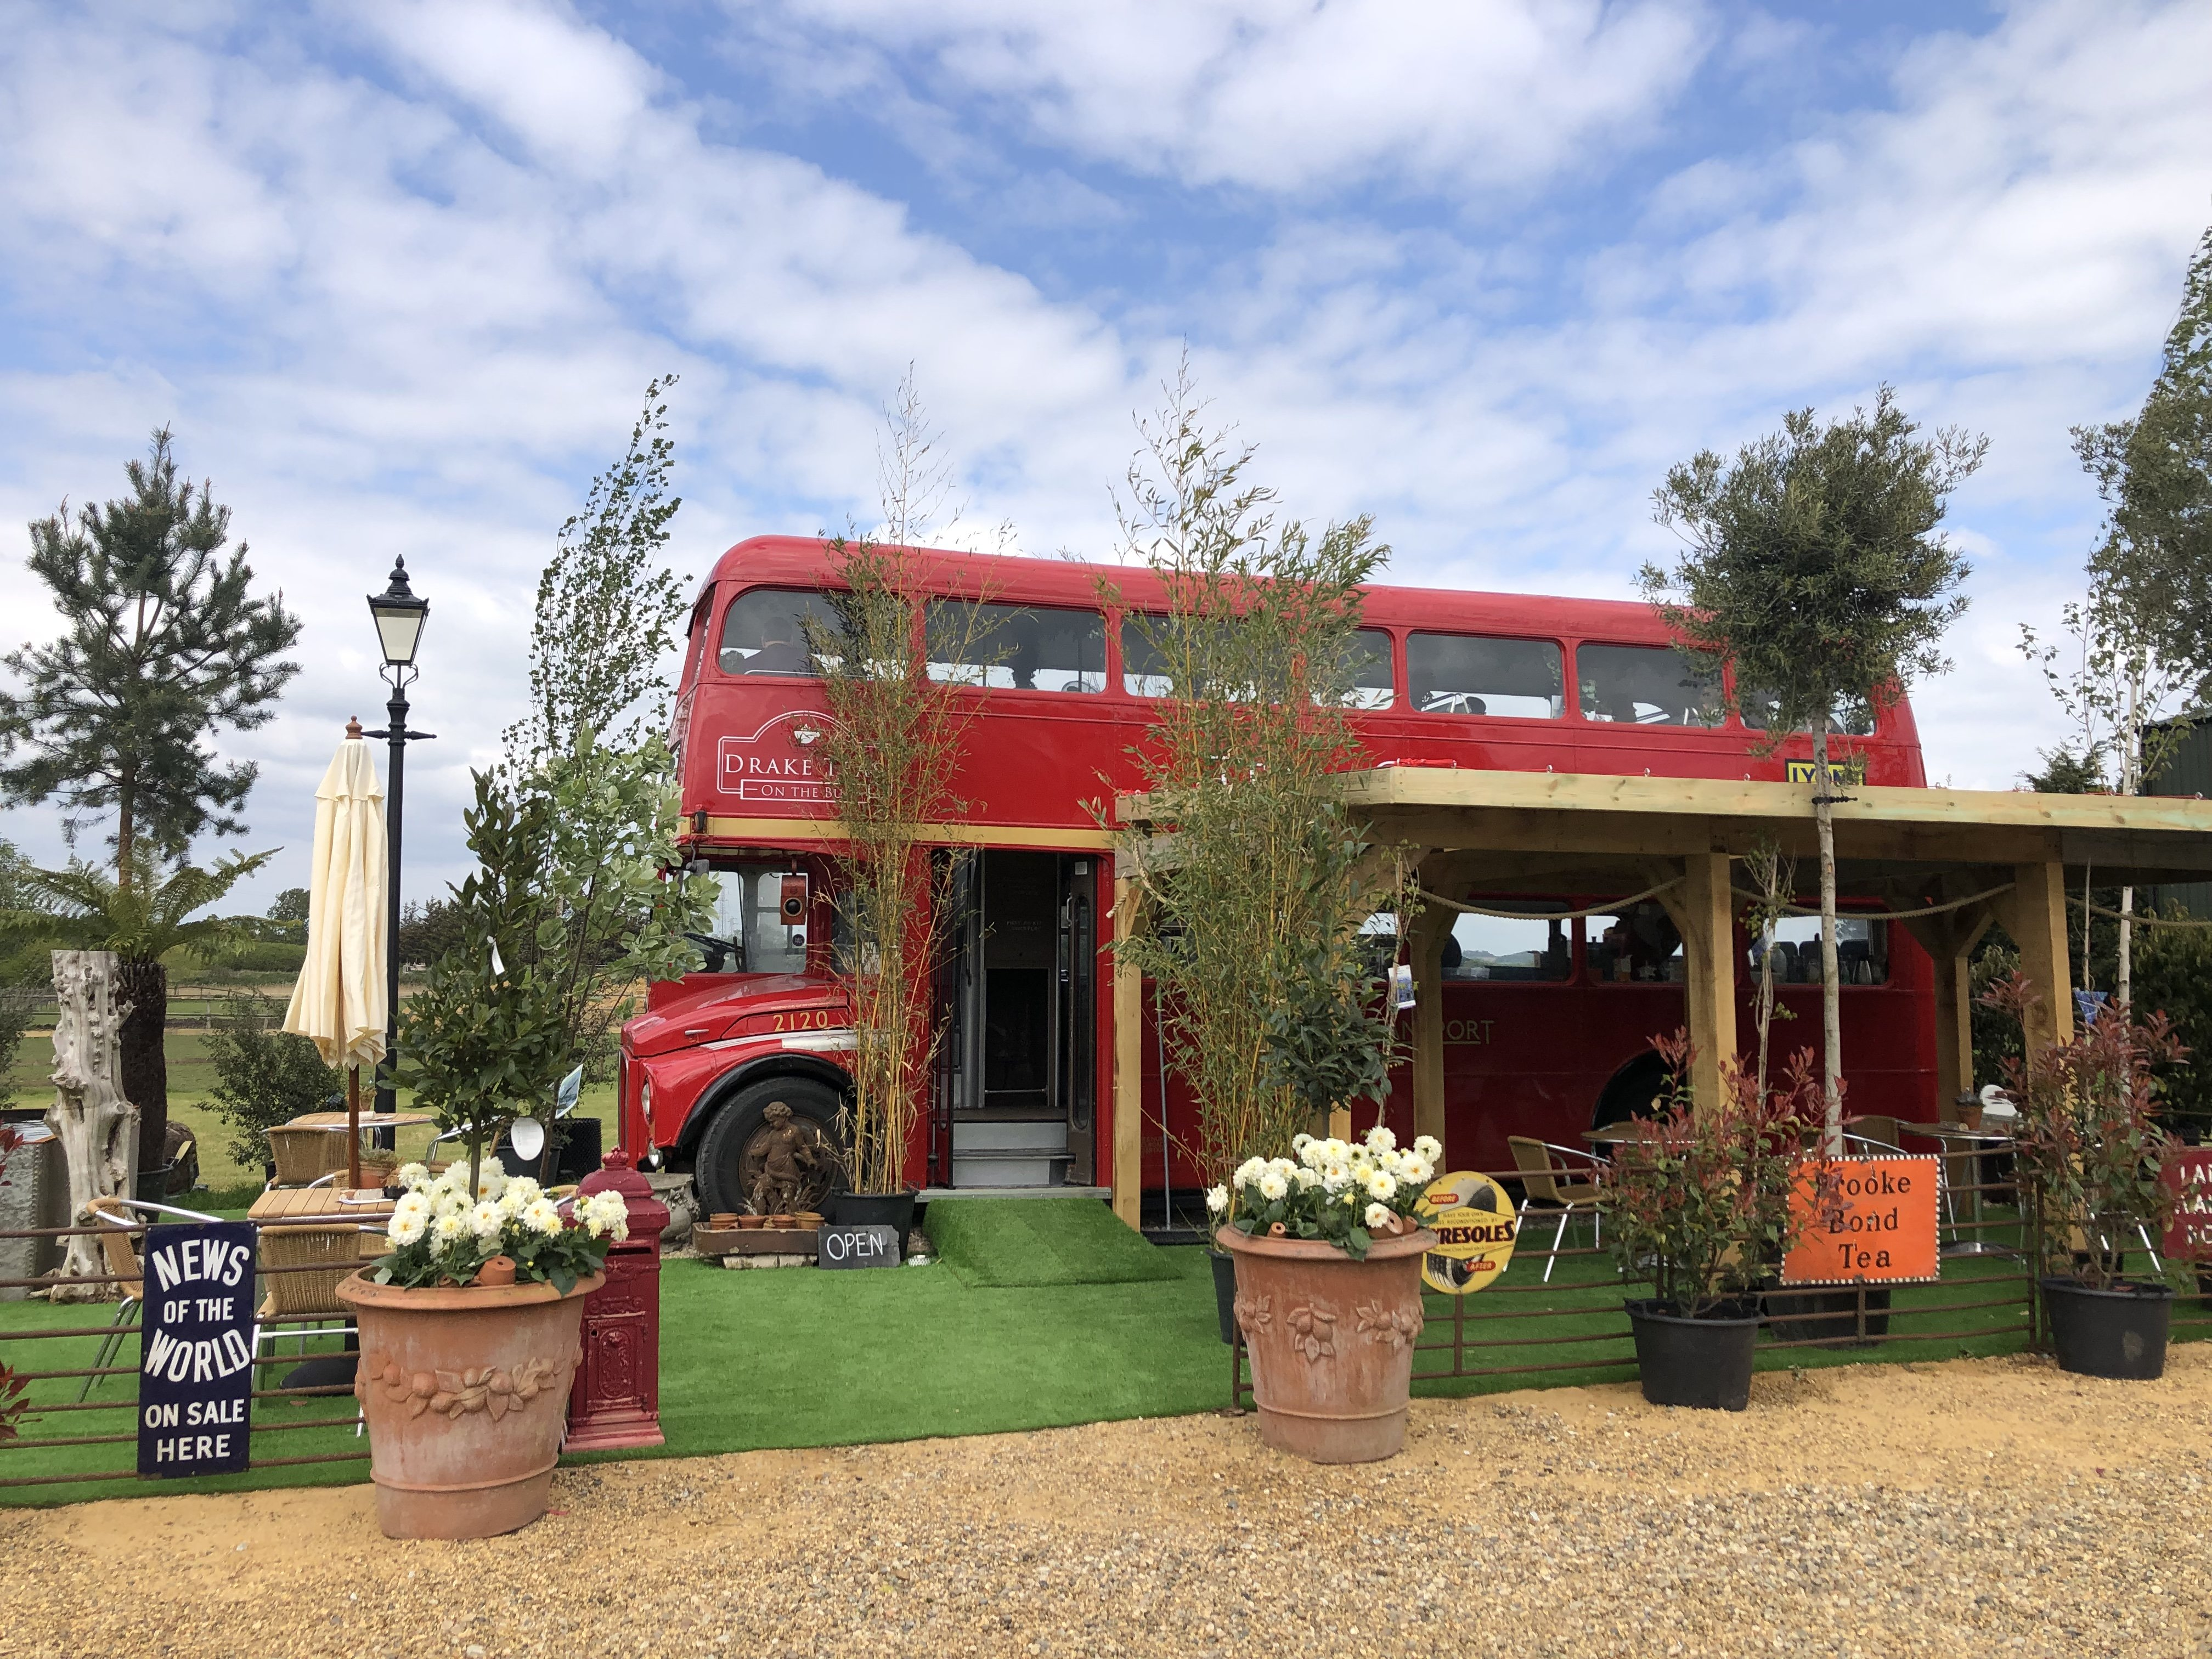 Drakes Teas on the Bus a London Bus Tea Room in Essex ,There is a perfect spot for a cup of tea and a slice of cake at Drakes Teas On The Bus in Battlesbridge Essex. Drakes Teas On The Bus is a quirky tea room all on a route master London transport bus.